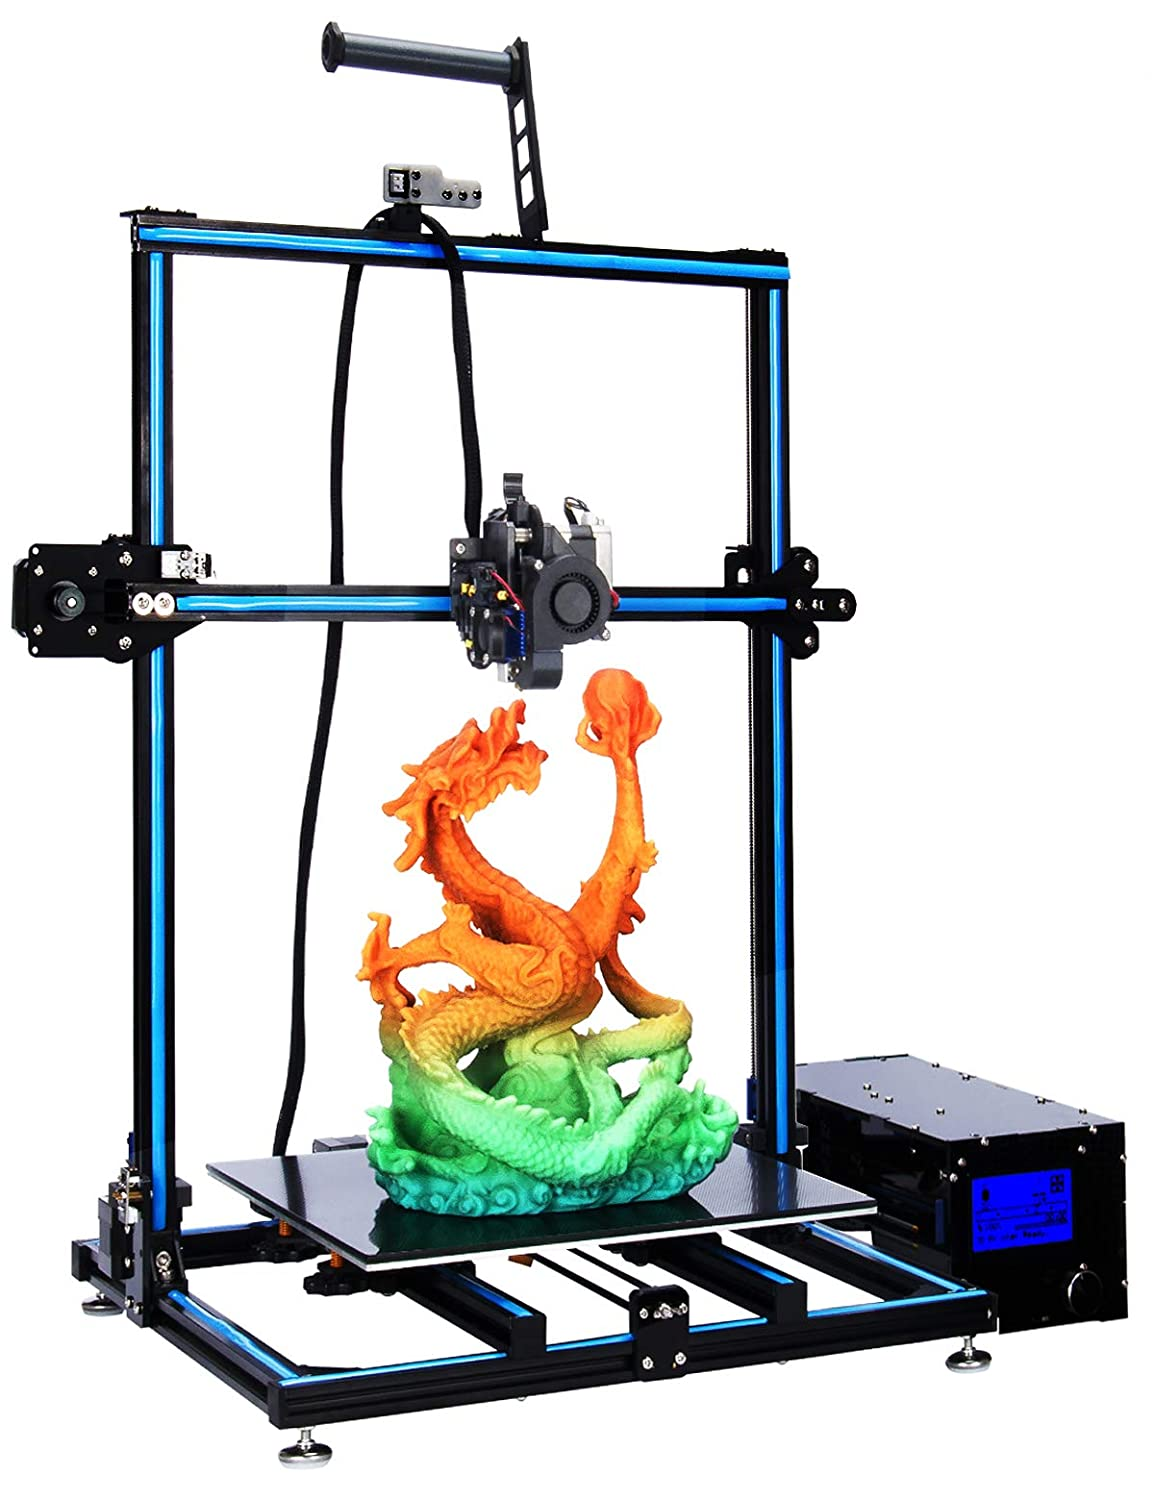 ADIMLab Updated Gantry Pro 3D Printer with 310X310X410 Big Size 24V Power, Titan Direct Extruder, Lattice Glass, Resume Print and Run Out Detection, ...